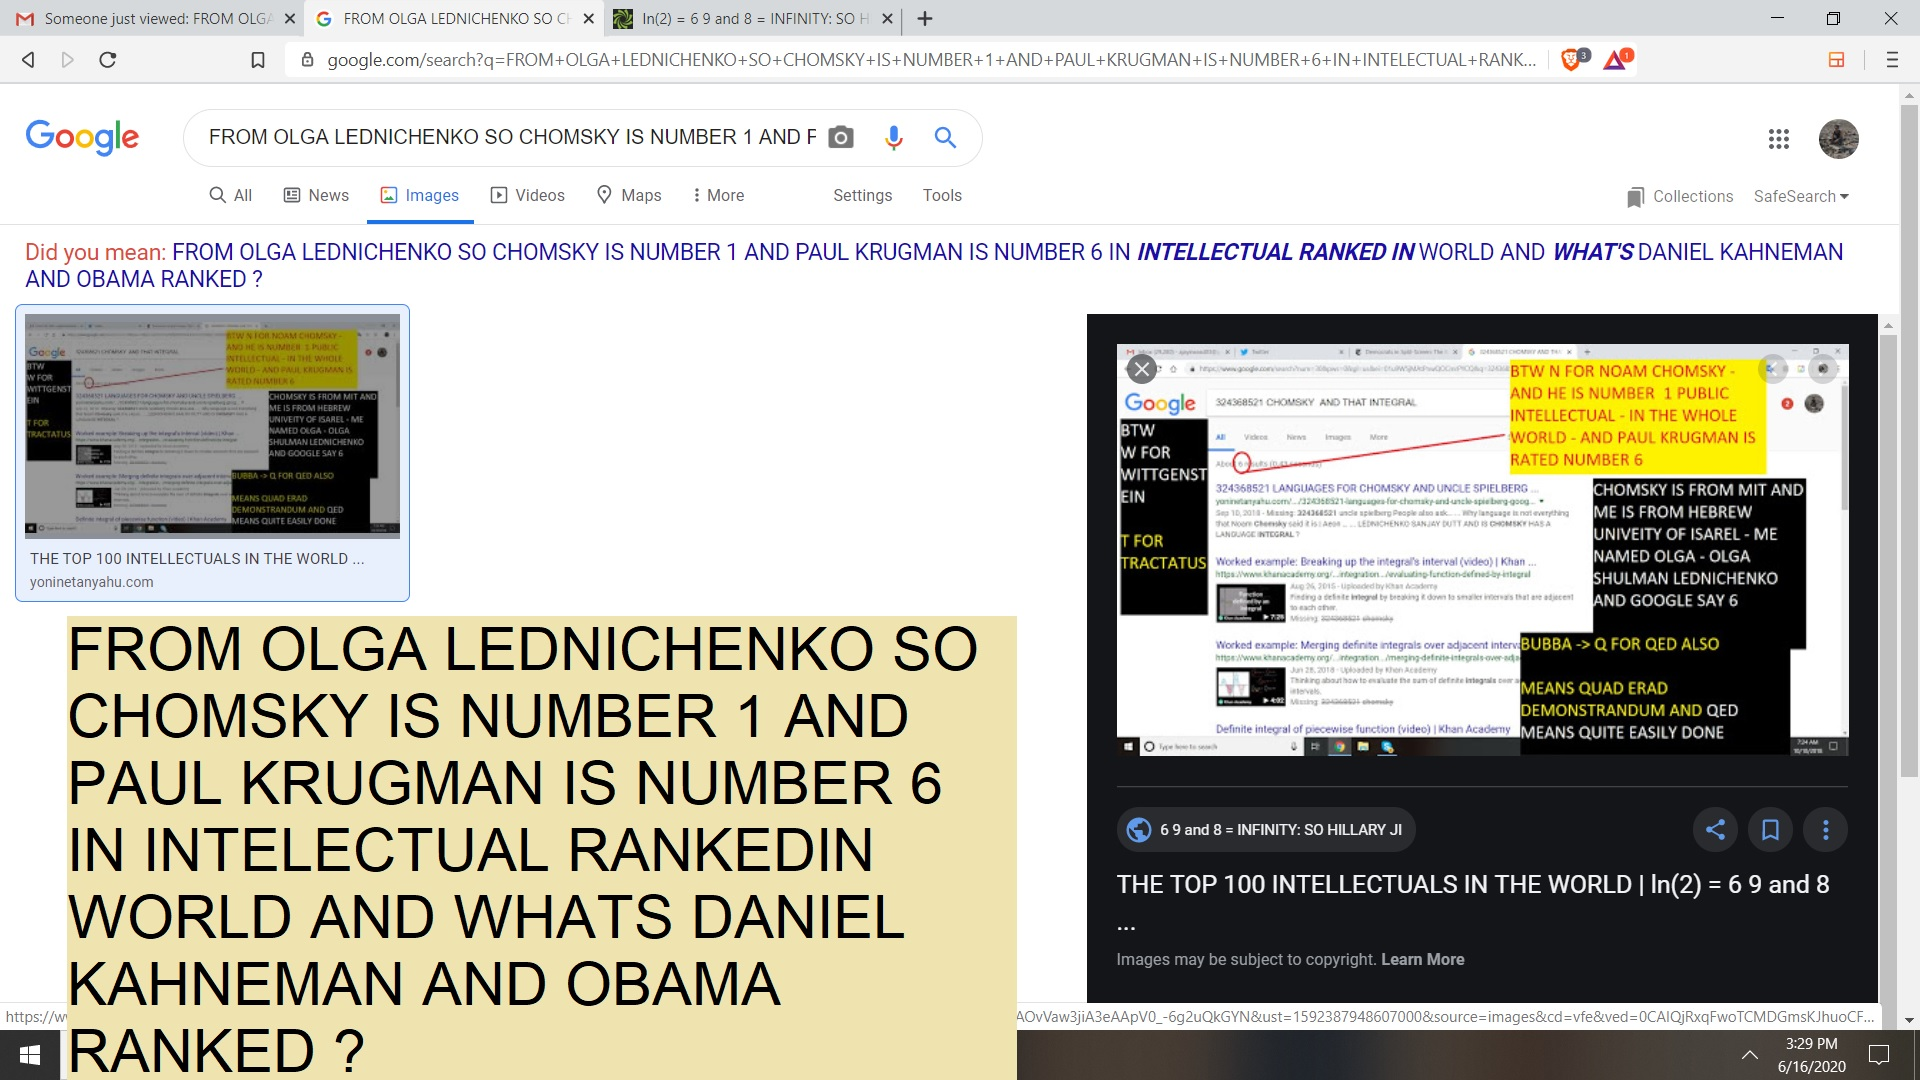 FROM OLGA LEDNICHENKO SO CHOMSKY IS NUMBER 1 AND PAUL KRUGMAN IS NUMBER 6 IN INTELECTUAL RANKEDIN WORLD AND WHATS DANIEL KAHNEMAN AND OBAMA RANKED